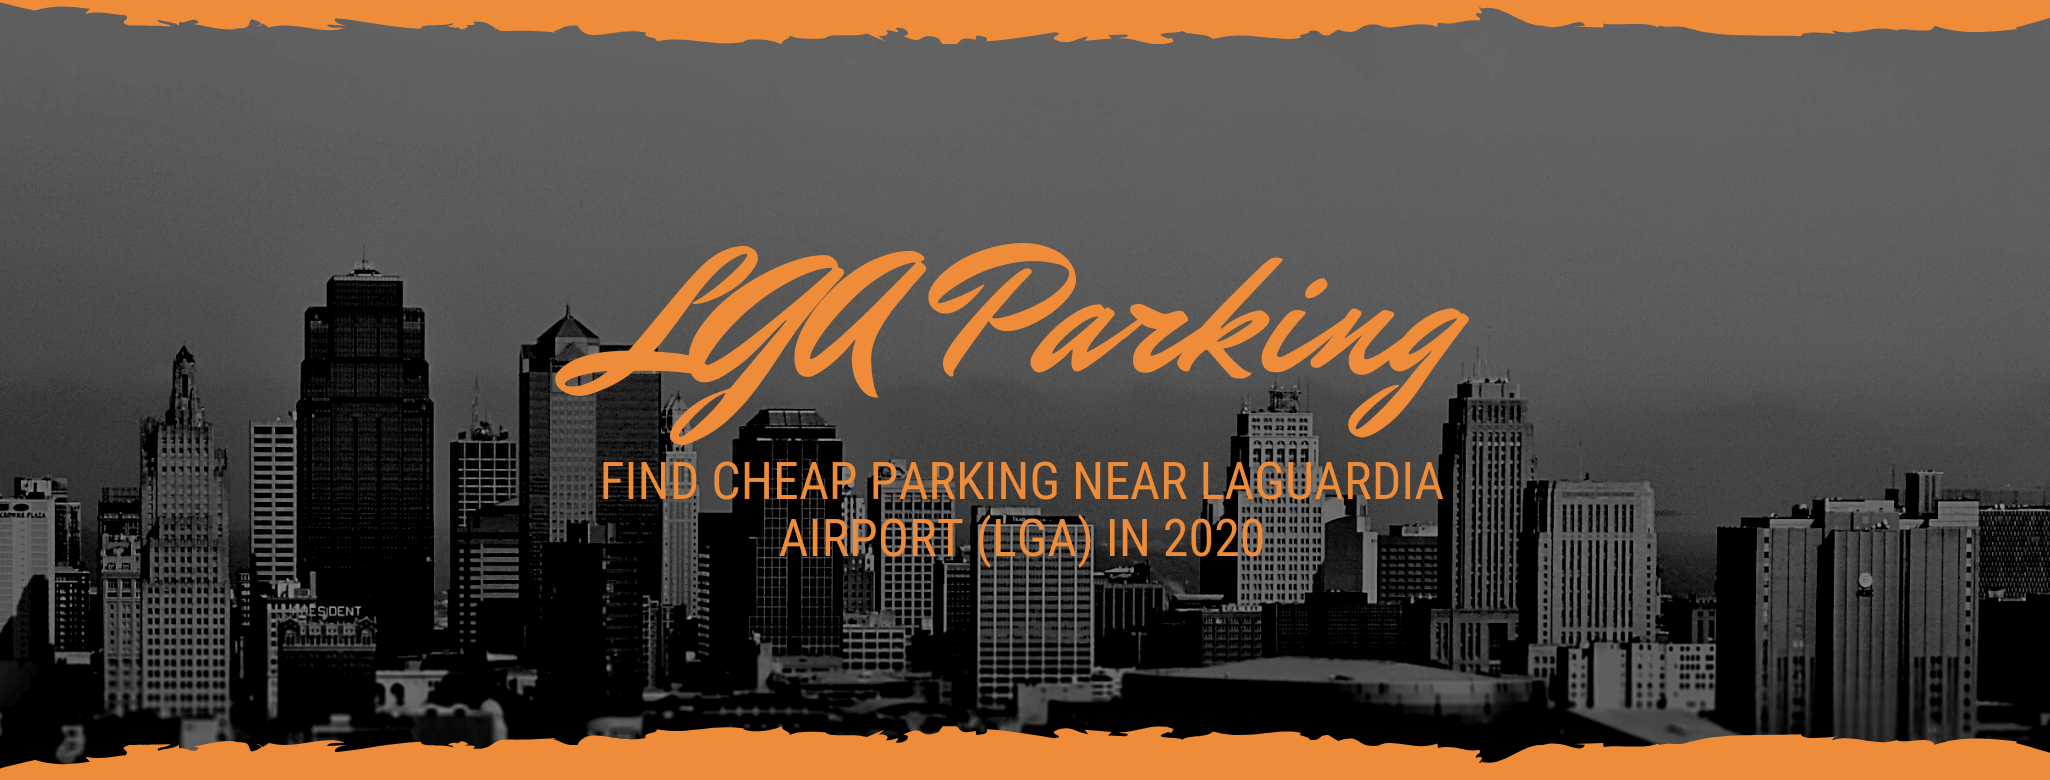 LaGuardia Airport LGA Parking